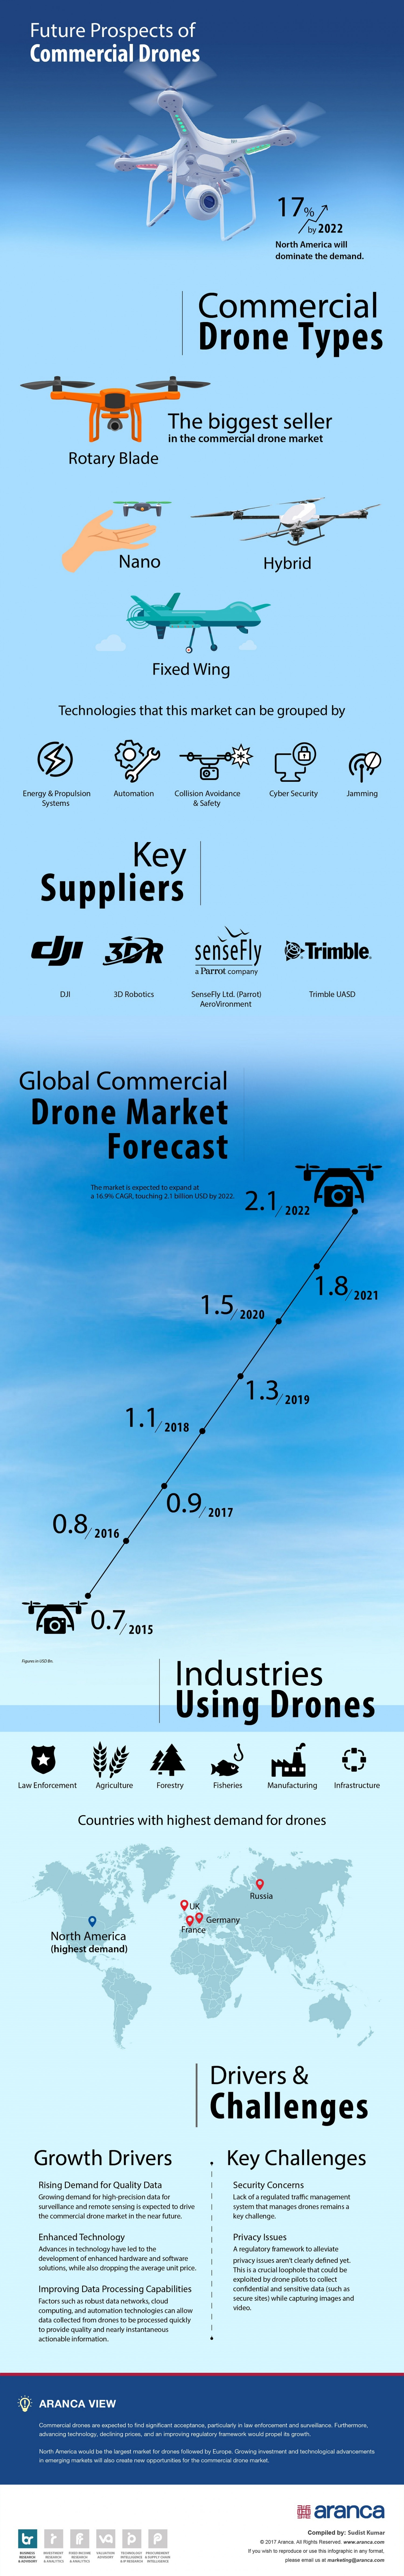 Commercial Drones — Future Prospects Infographic